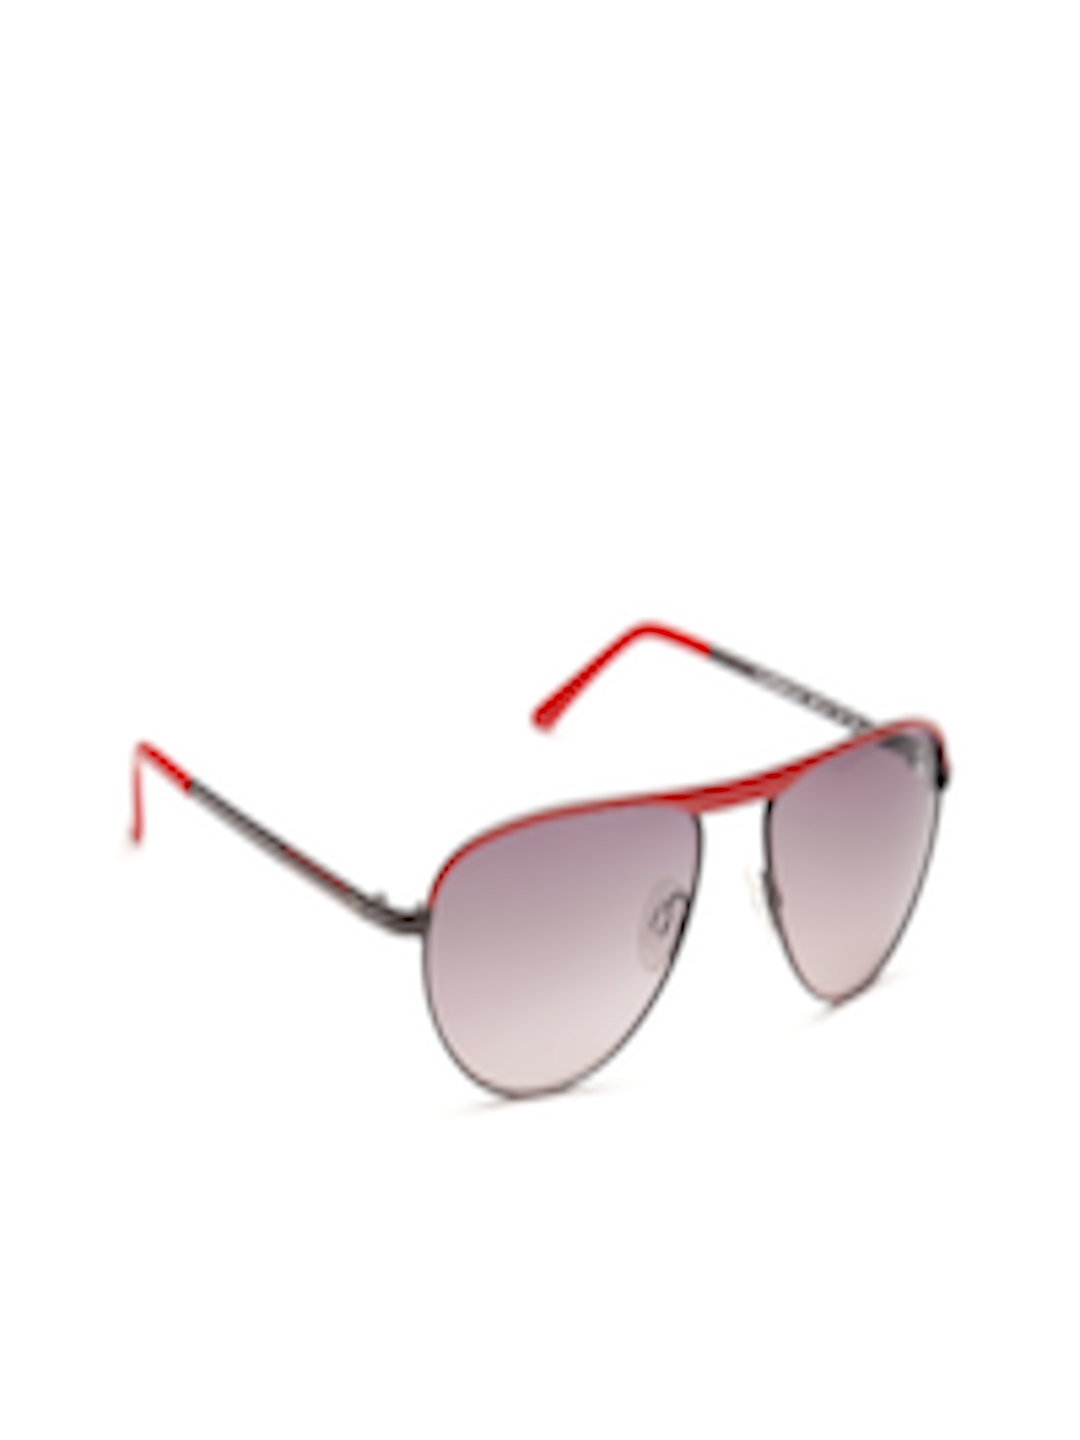 For Buy Sunglasses Accessories Bes656 Benetton United i1 Of Colors Oval Unisex uXPkiZ